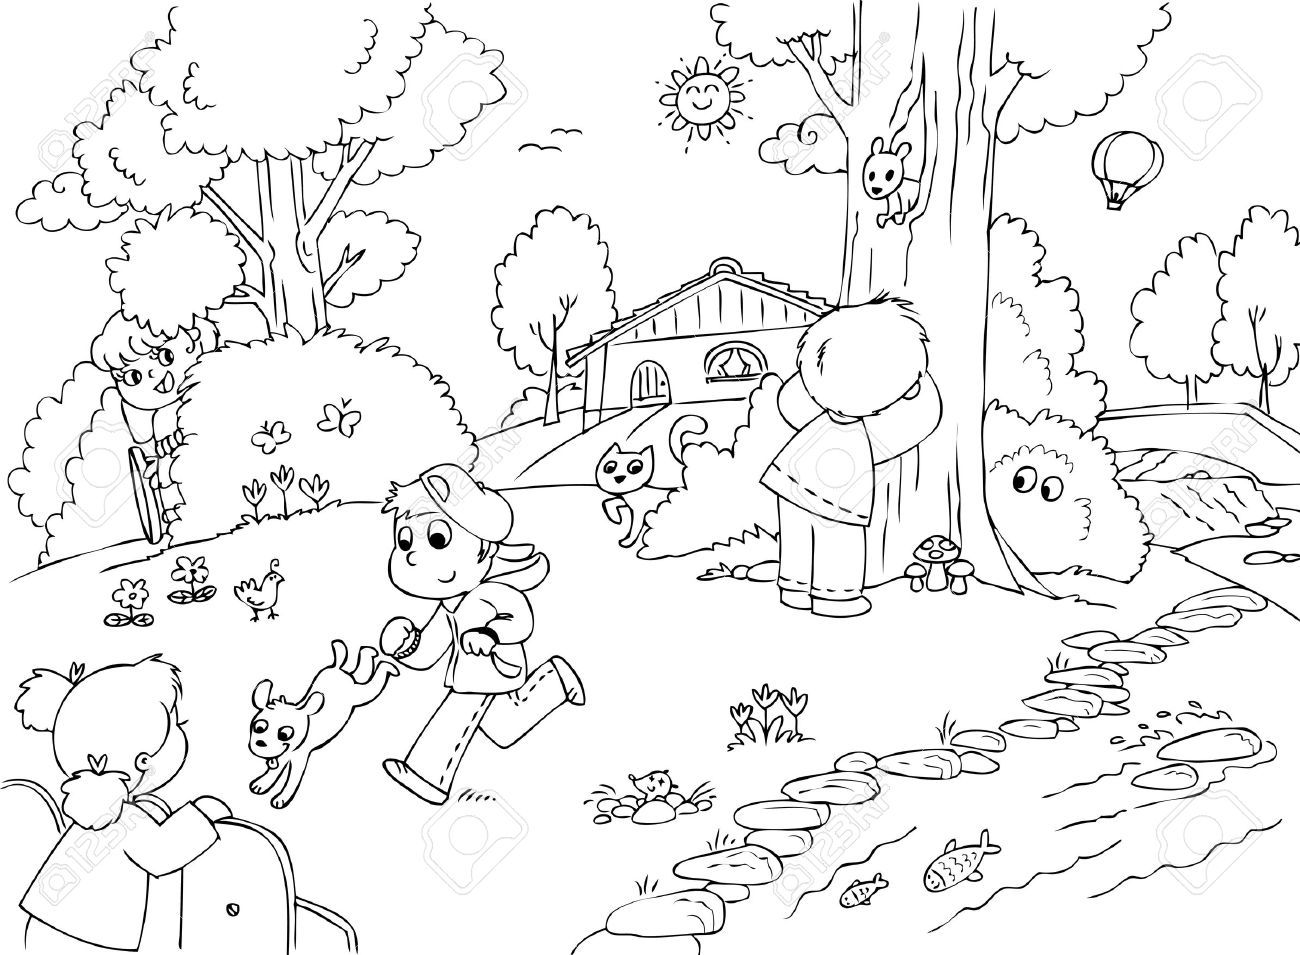 Children playing in the park clipart black and white vector freeuse download Children playing in the park clipart black and white 5 » Clipart Portal vector freeuse download